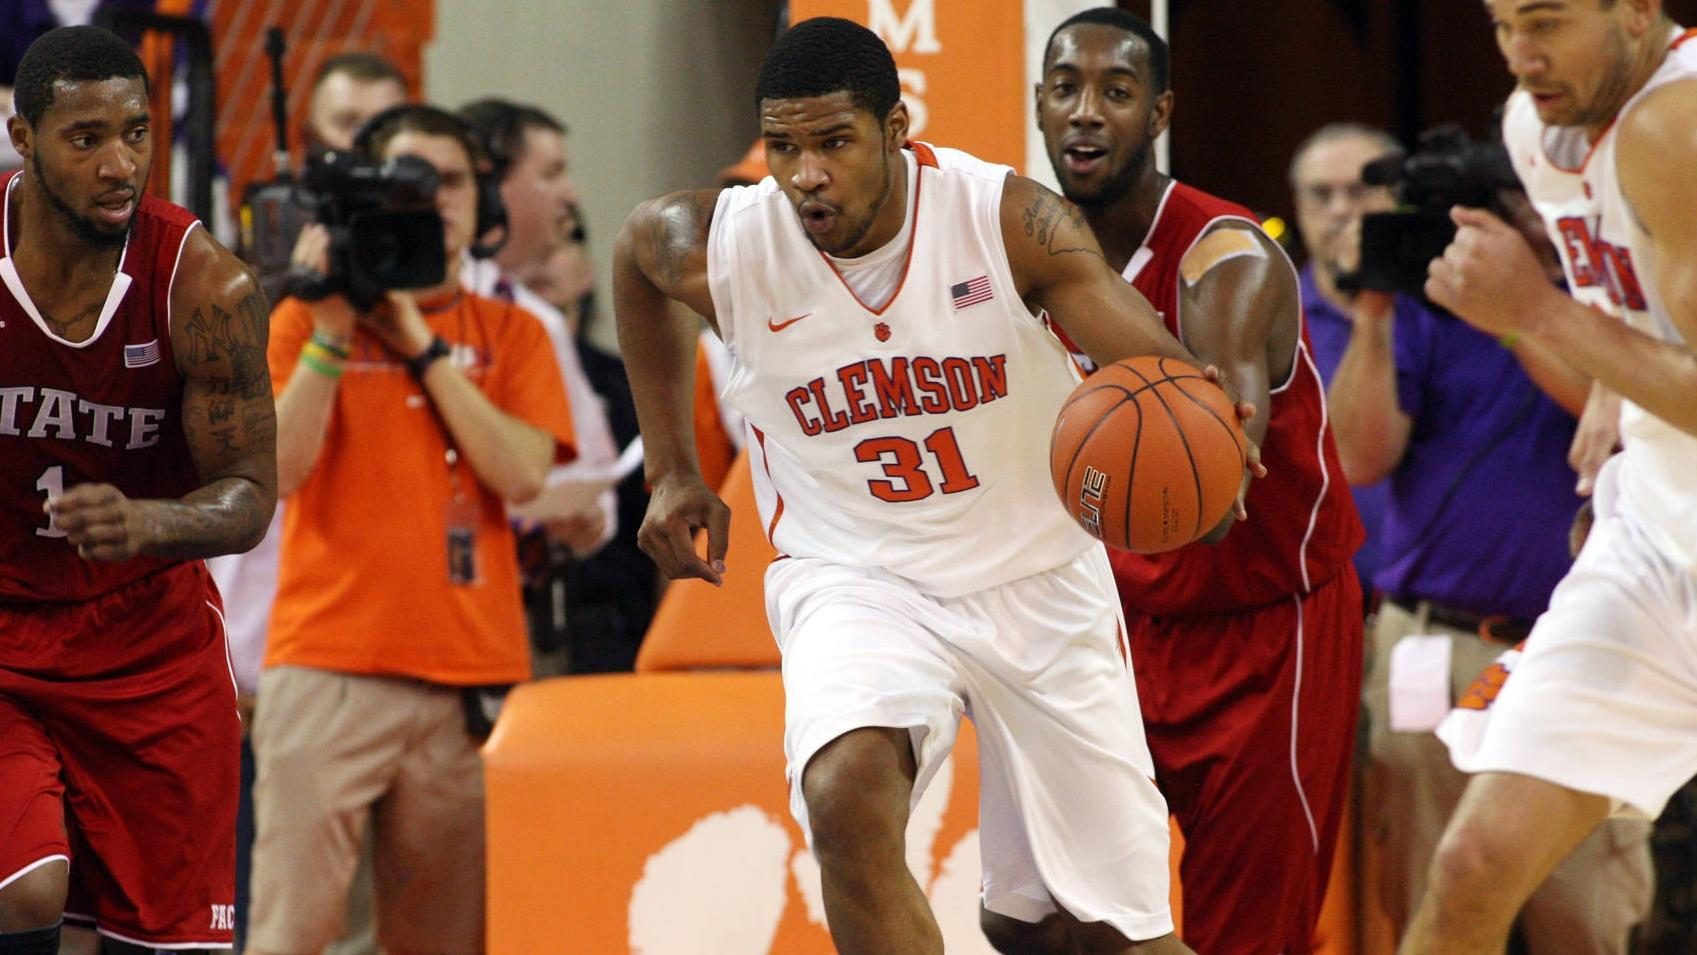 Clemson Announces 2012-13 Men's Basketball Conference Game Schedule